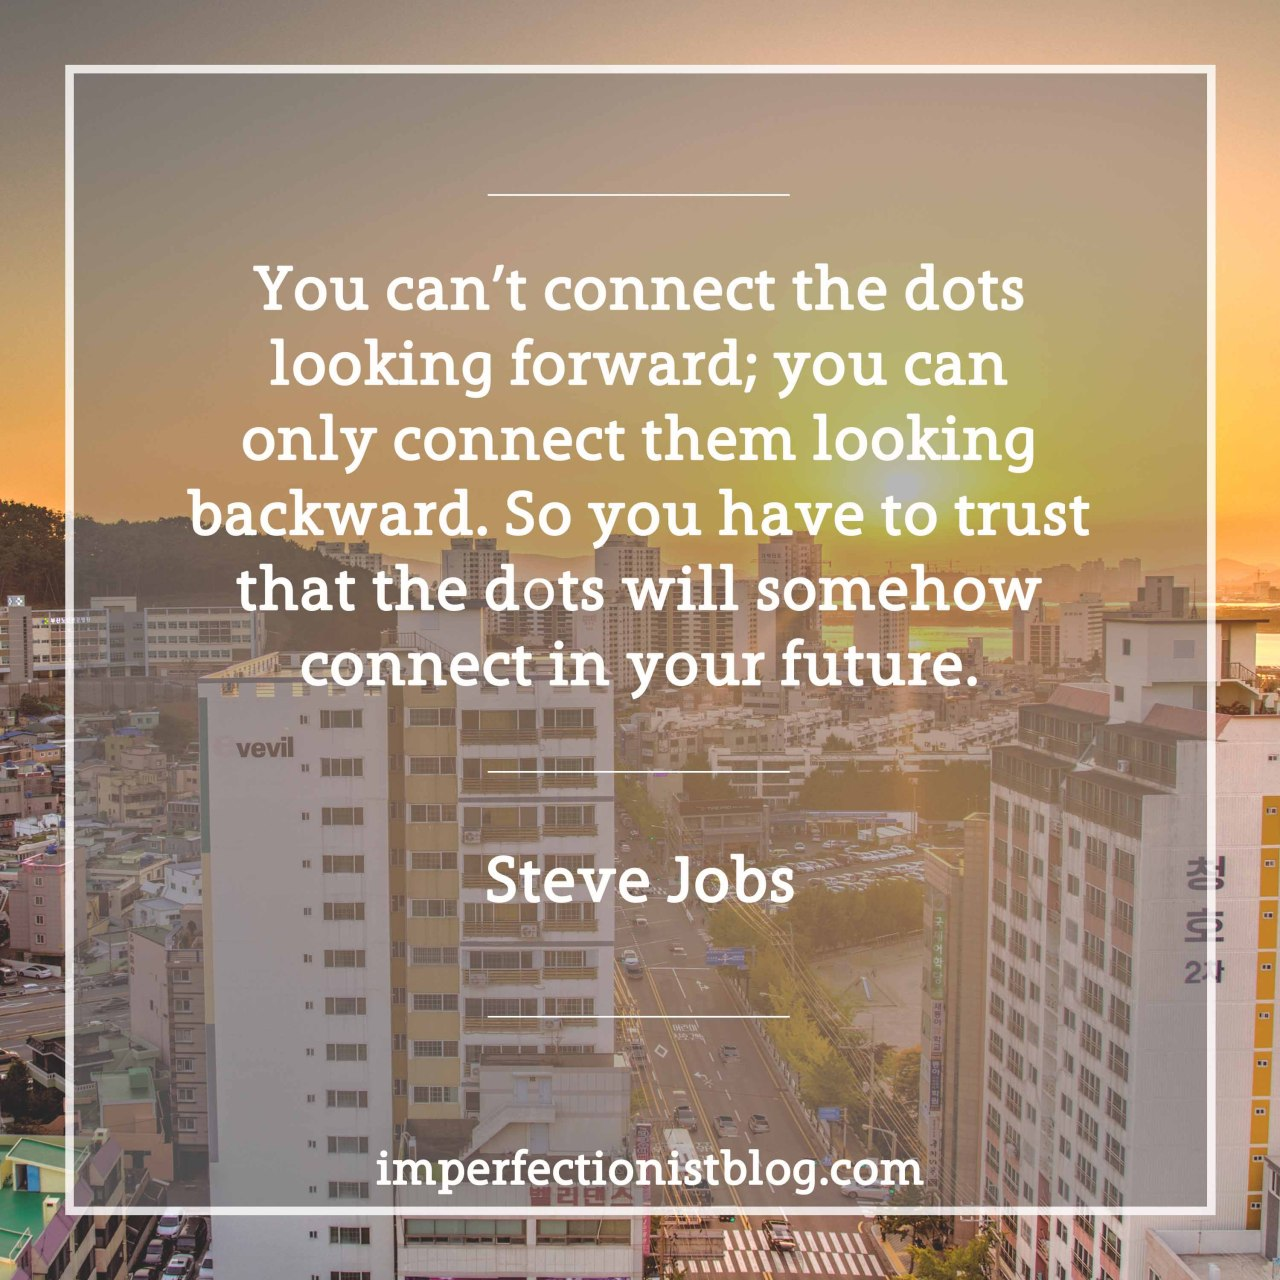 "#119 - ""You can't connect the dots looking forward; you can only connect them looking backward. So you have to trust that the dots will somehow connect in your future. ""-Steve Jobs  http://stanford.io/2jUMTlO"